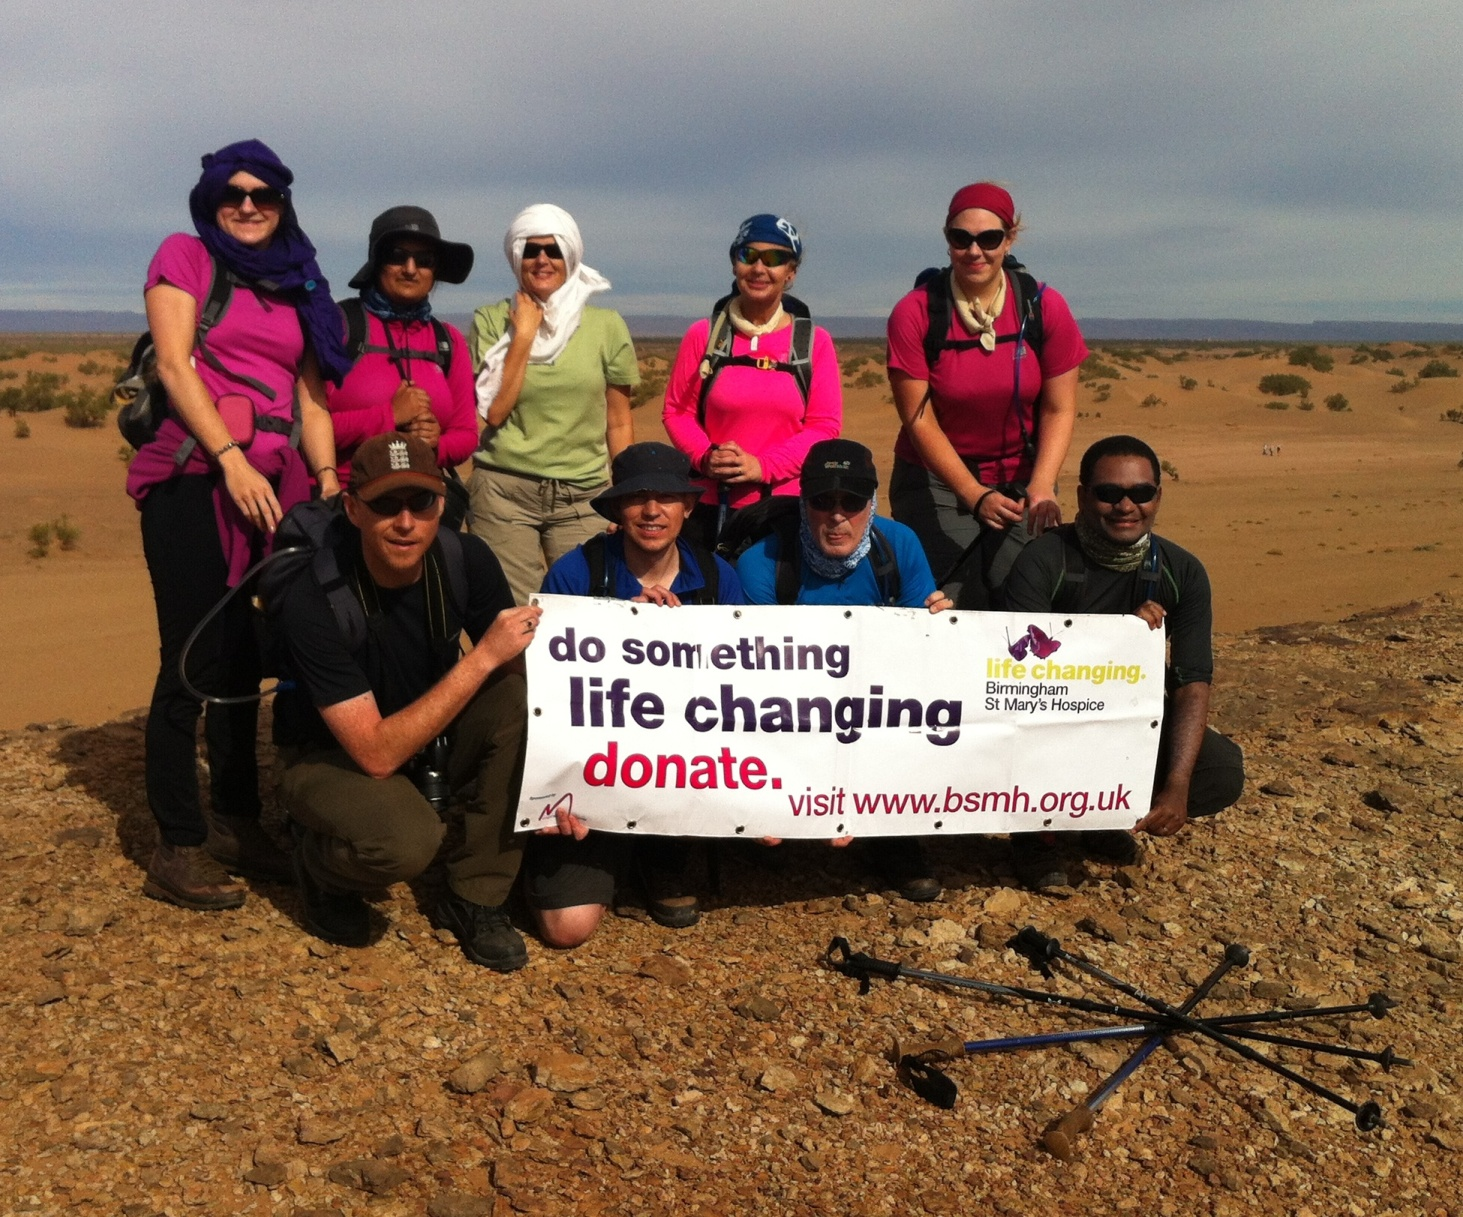 A team of trekkers raising money for Birmingham St Mary's Hospice in the Sahara desert in 2012